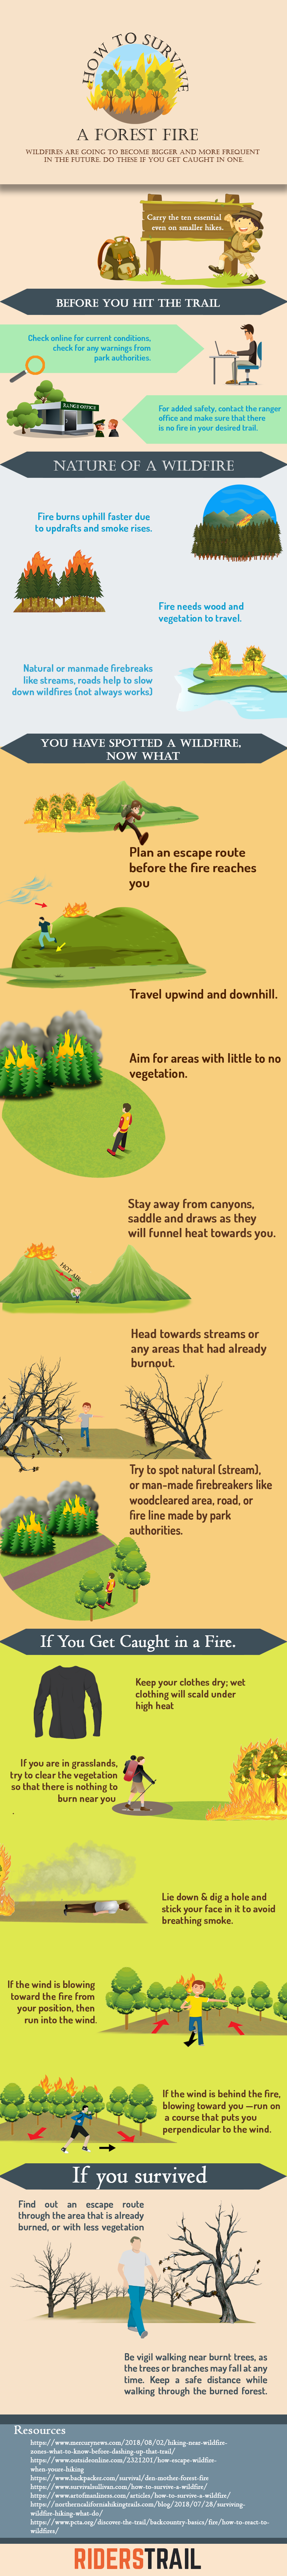 how to survive a forest fire while hiking